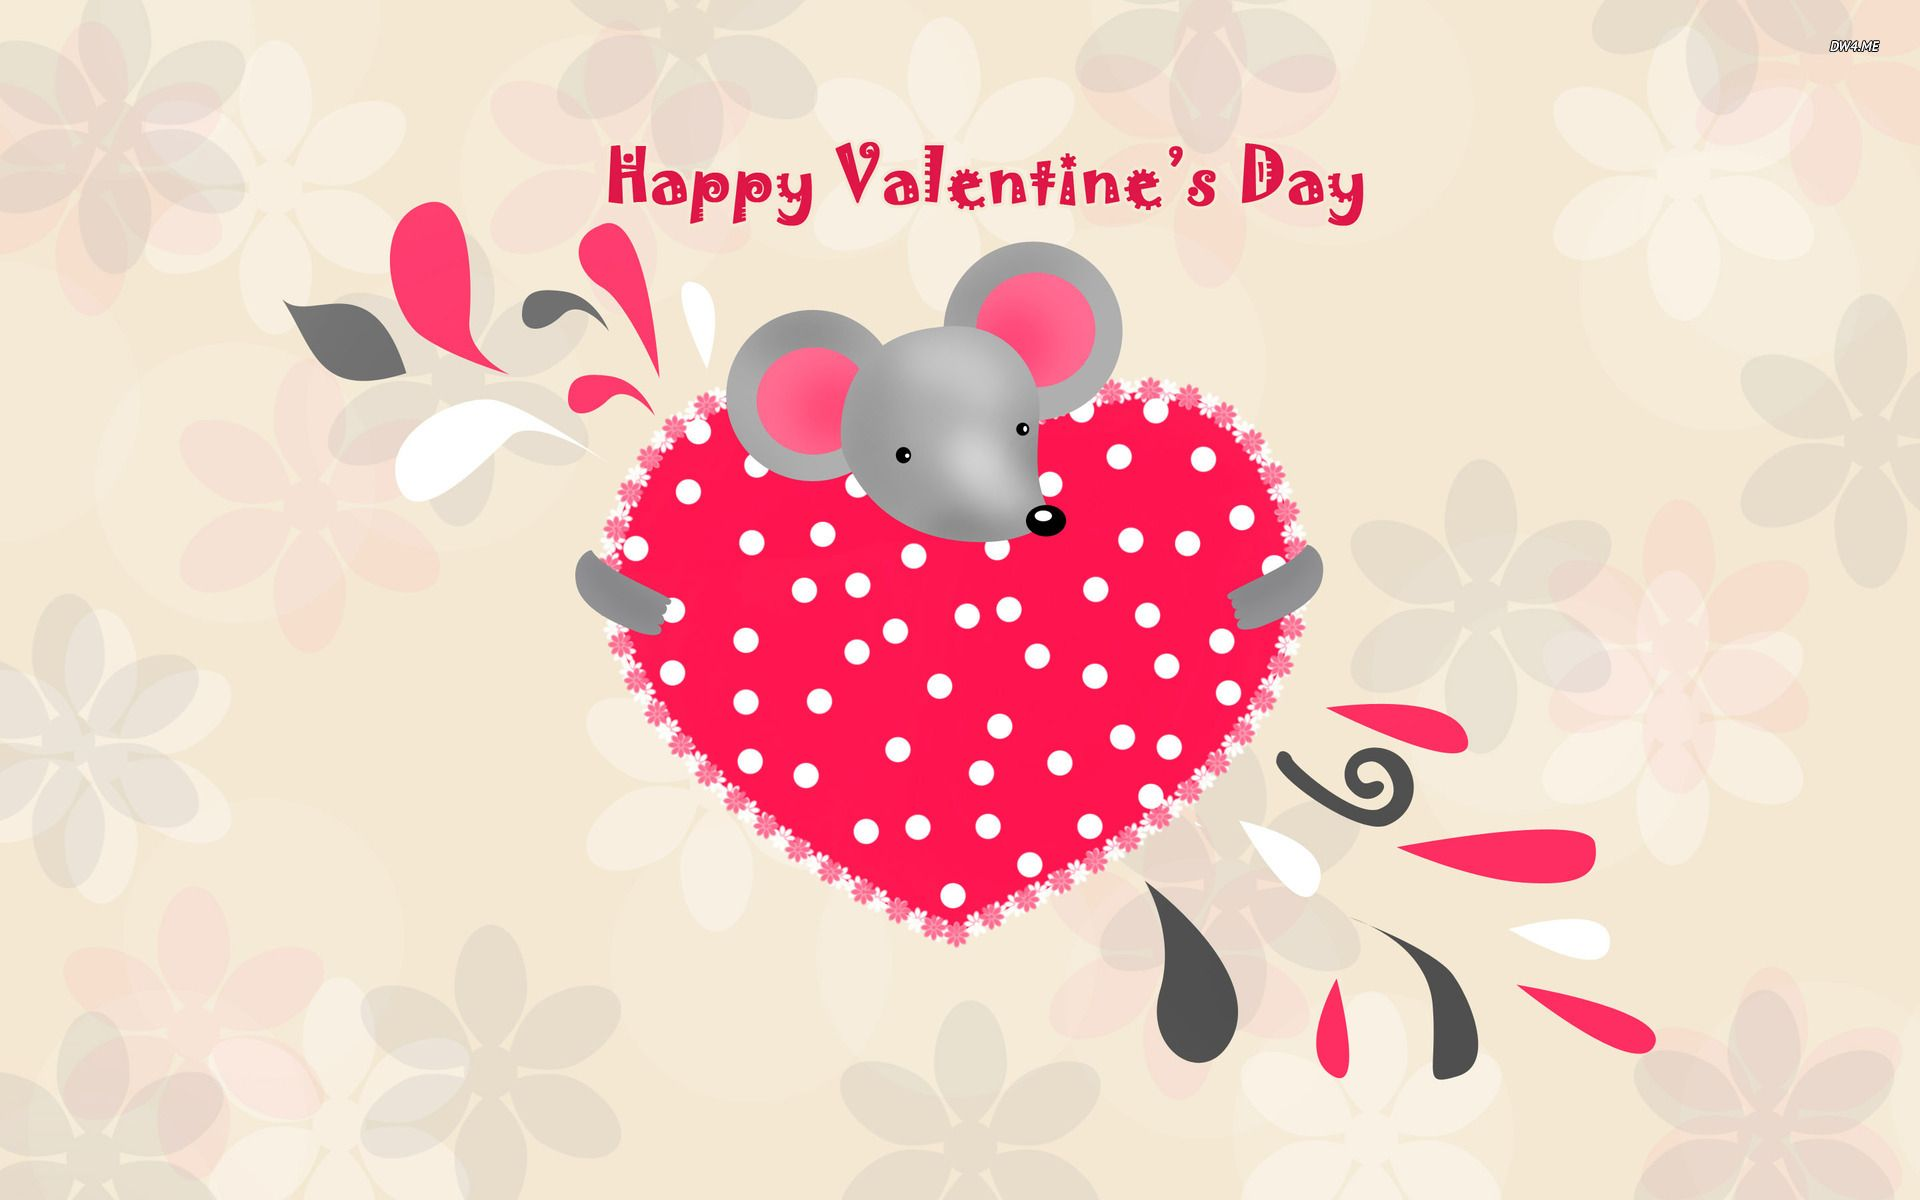 Valentines Day Hd Wallpapers 1 Valentines Day Hd Wallpapers